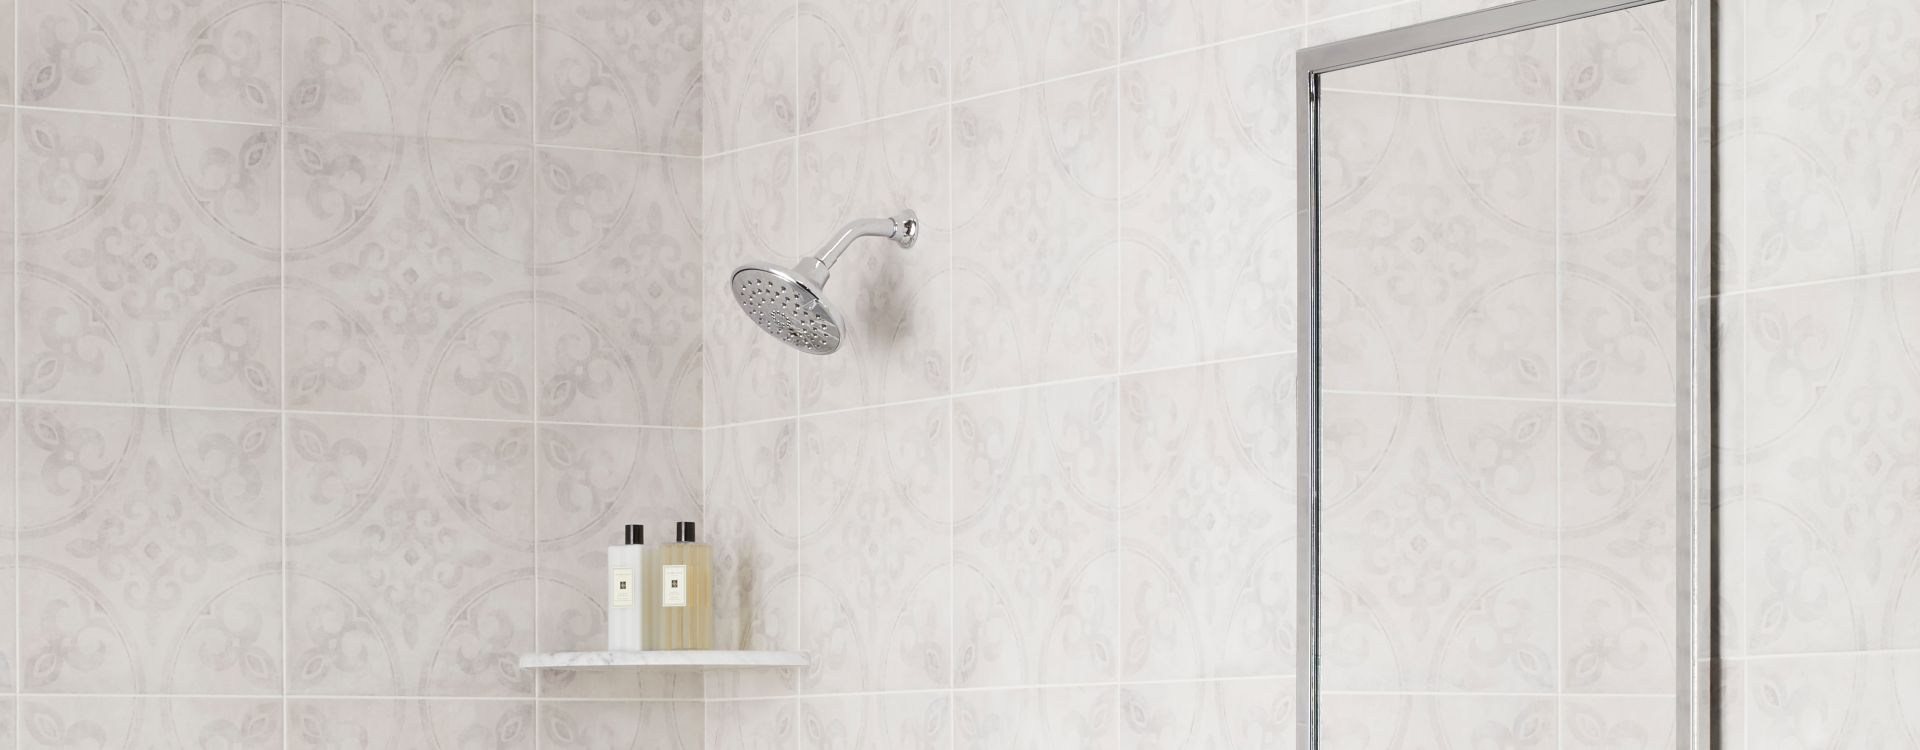 Wall Tile Designs Trends Ideas For 2019 The Tile Shop